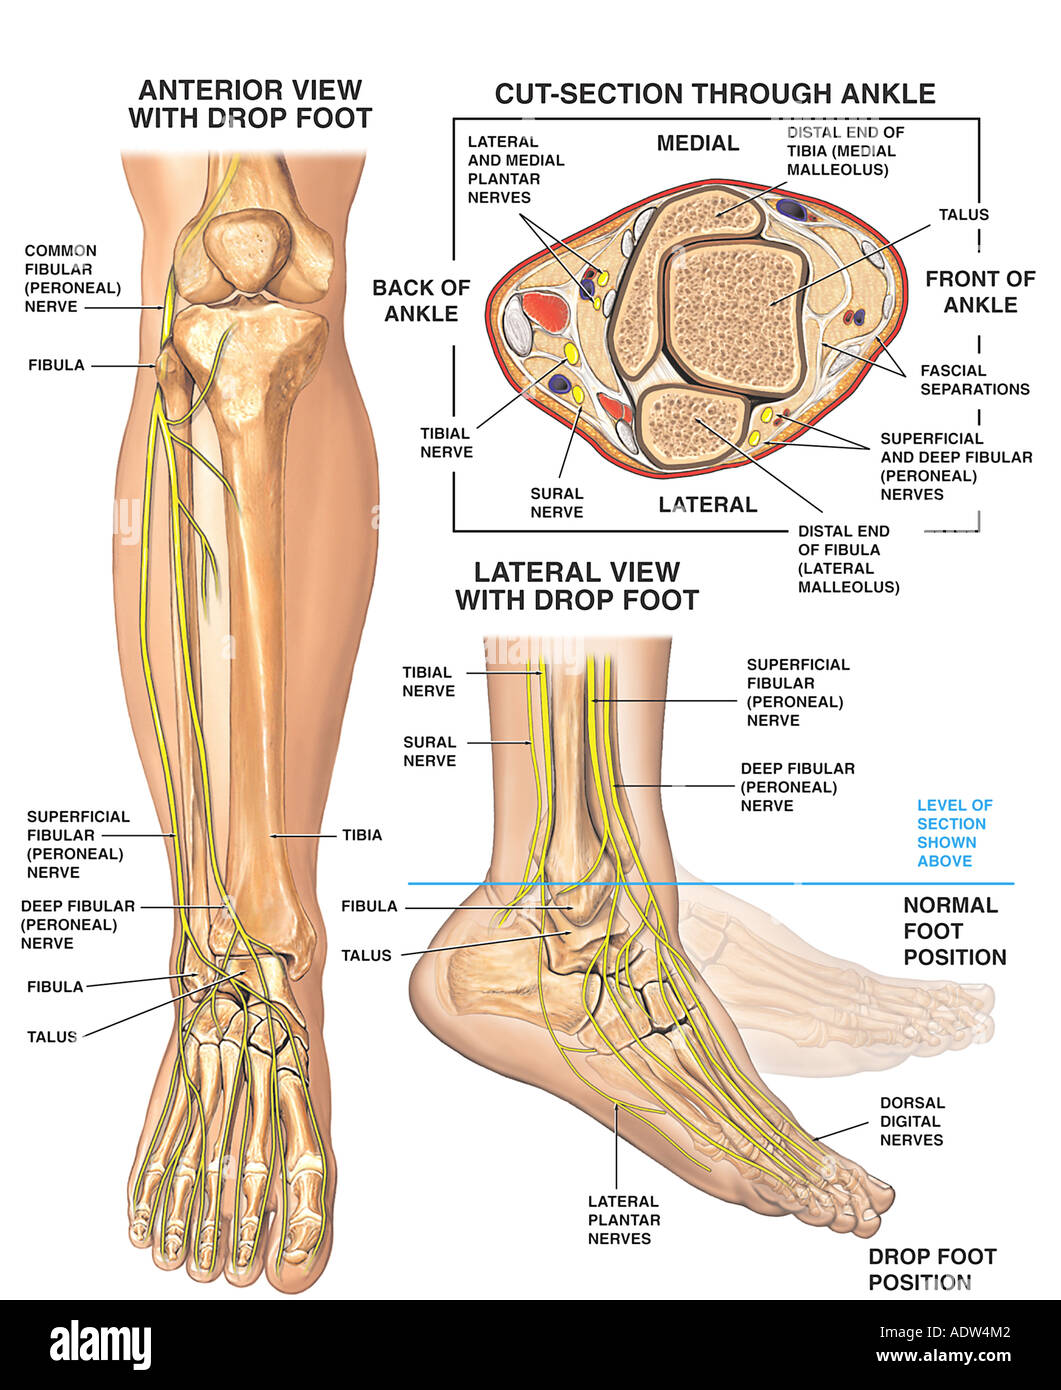 Anatomy of the Foot and Ankle with Foot Drop Deformity Stock Photo ...